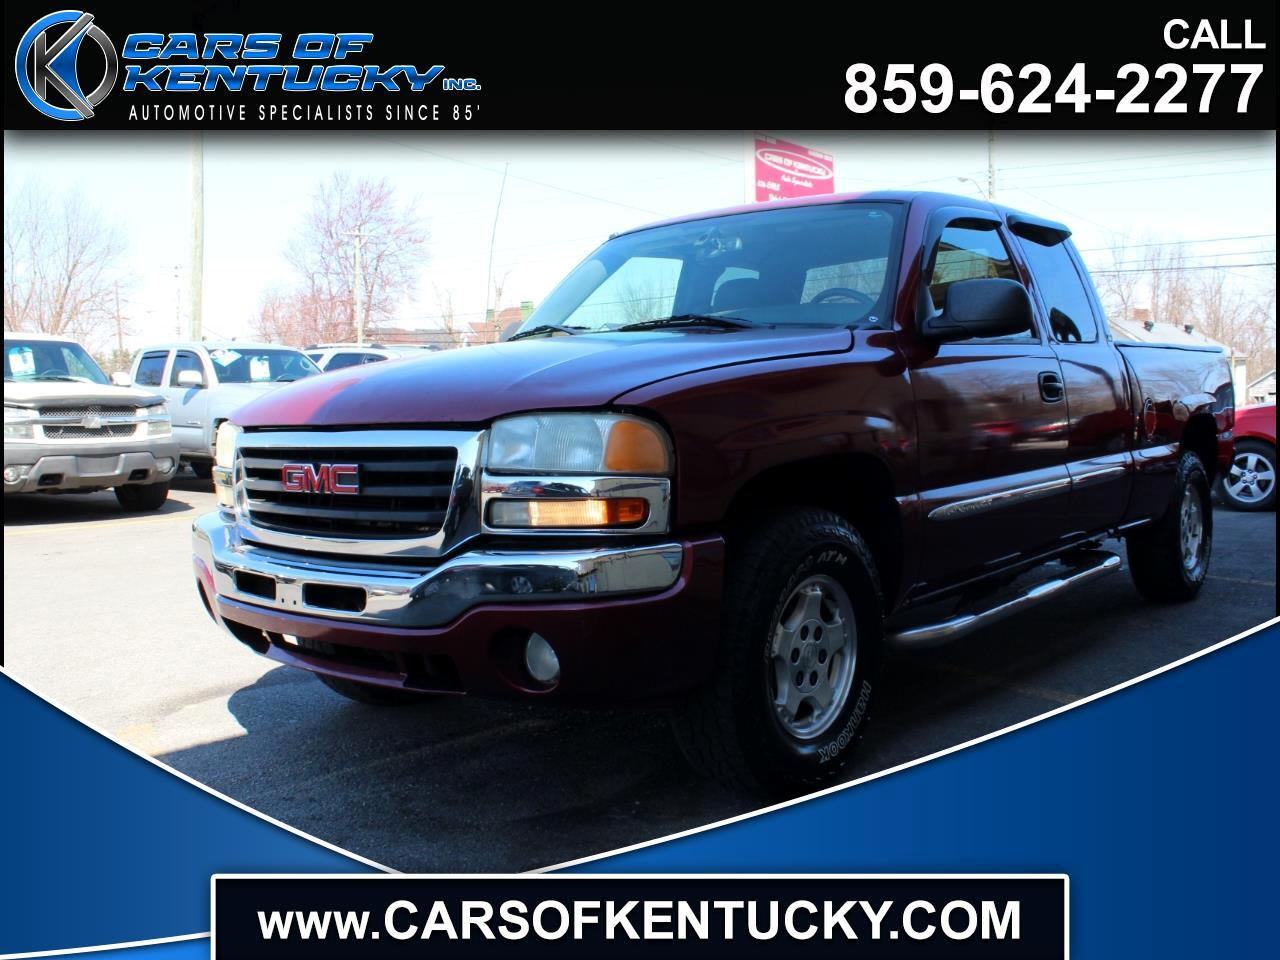 2004 GMC Sierra 1500 Ext. Cab Short Bed 4WD